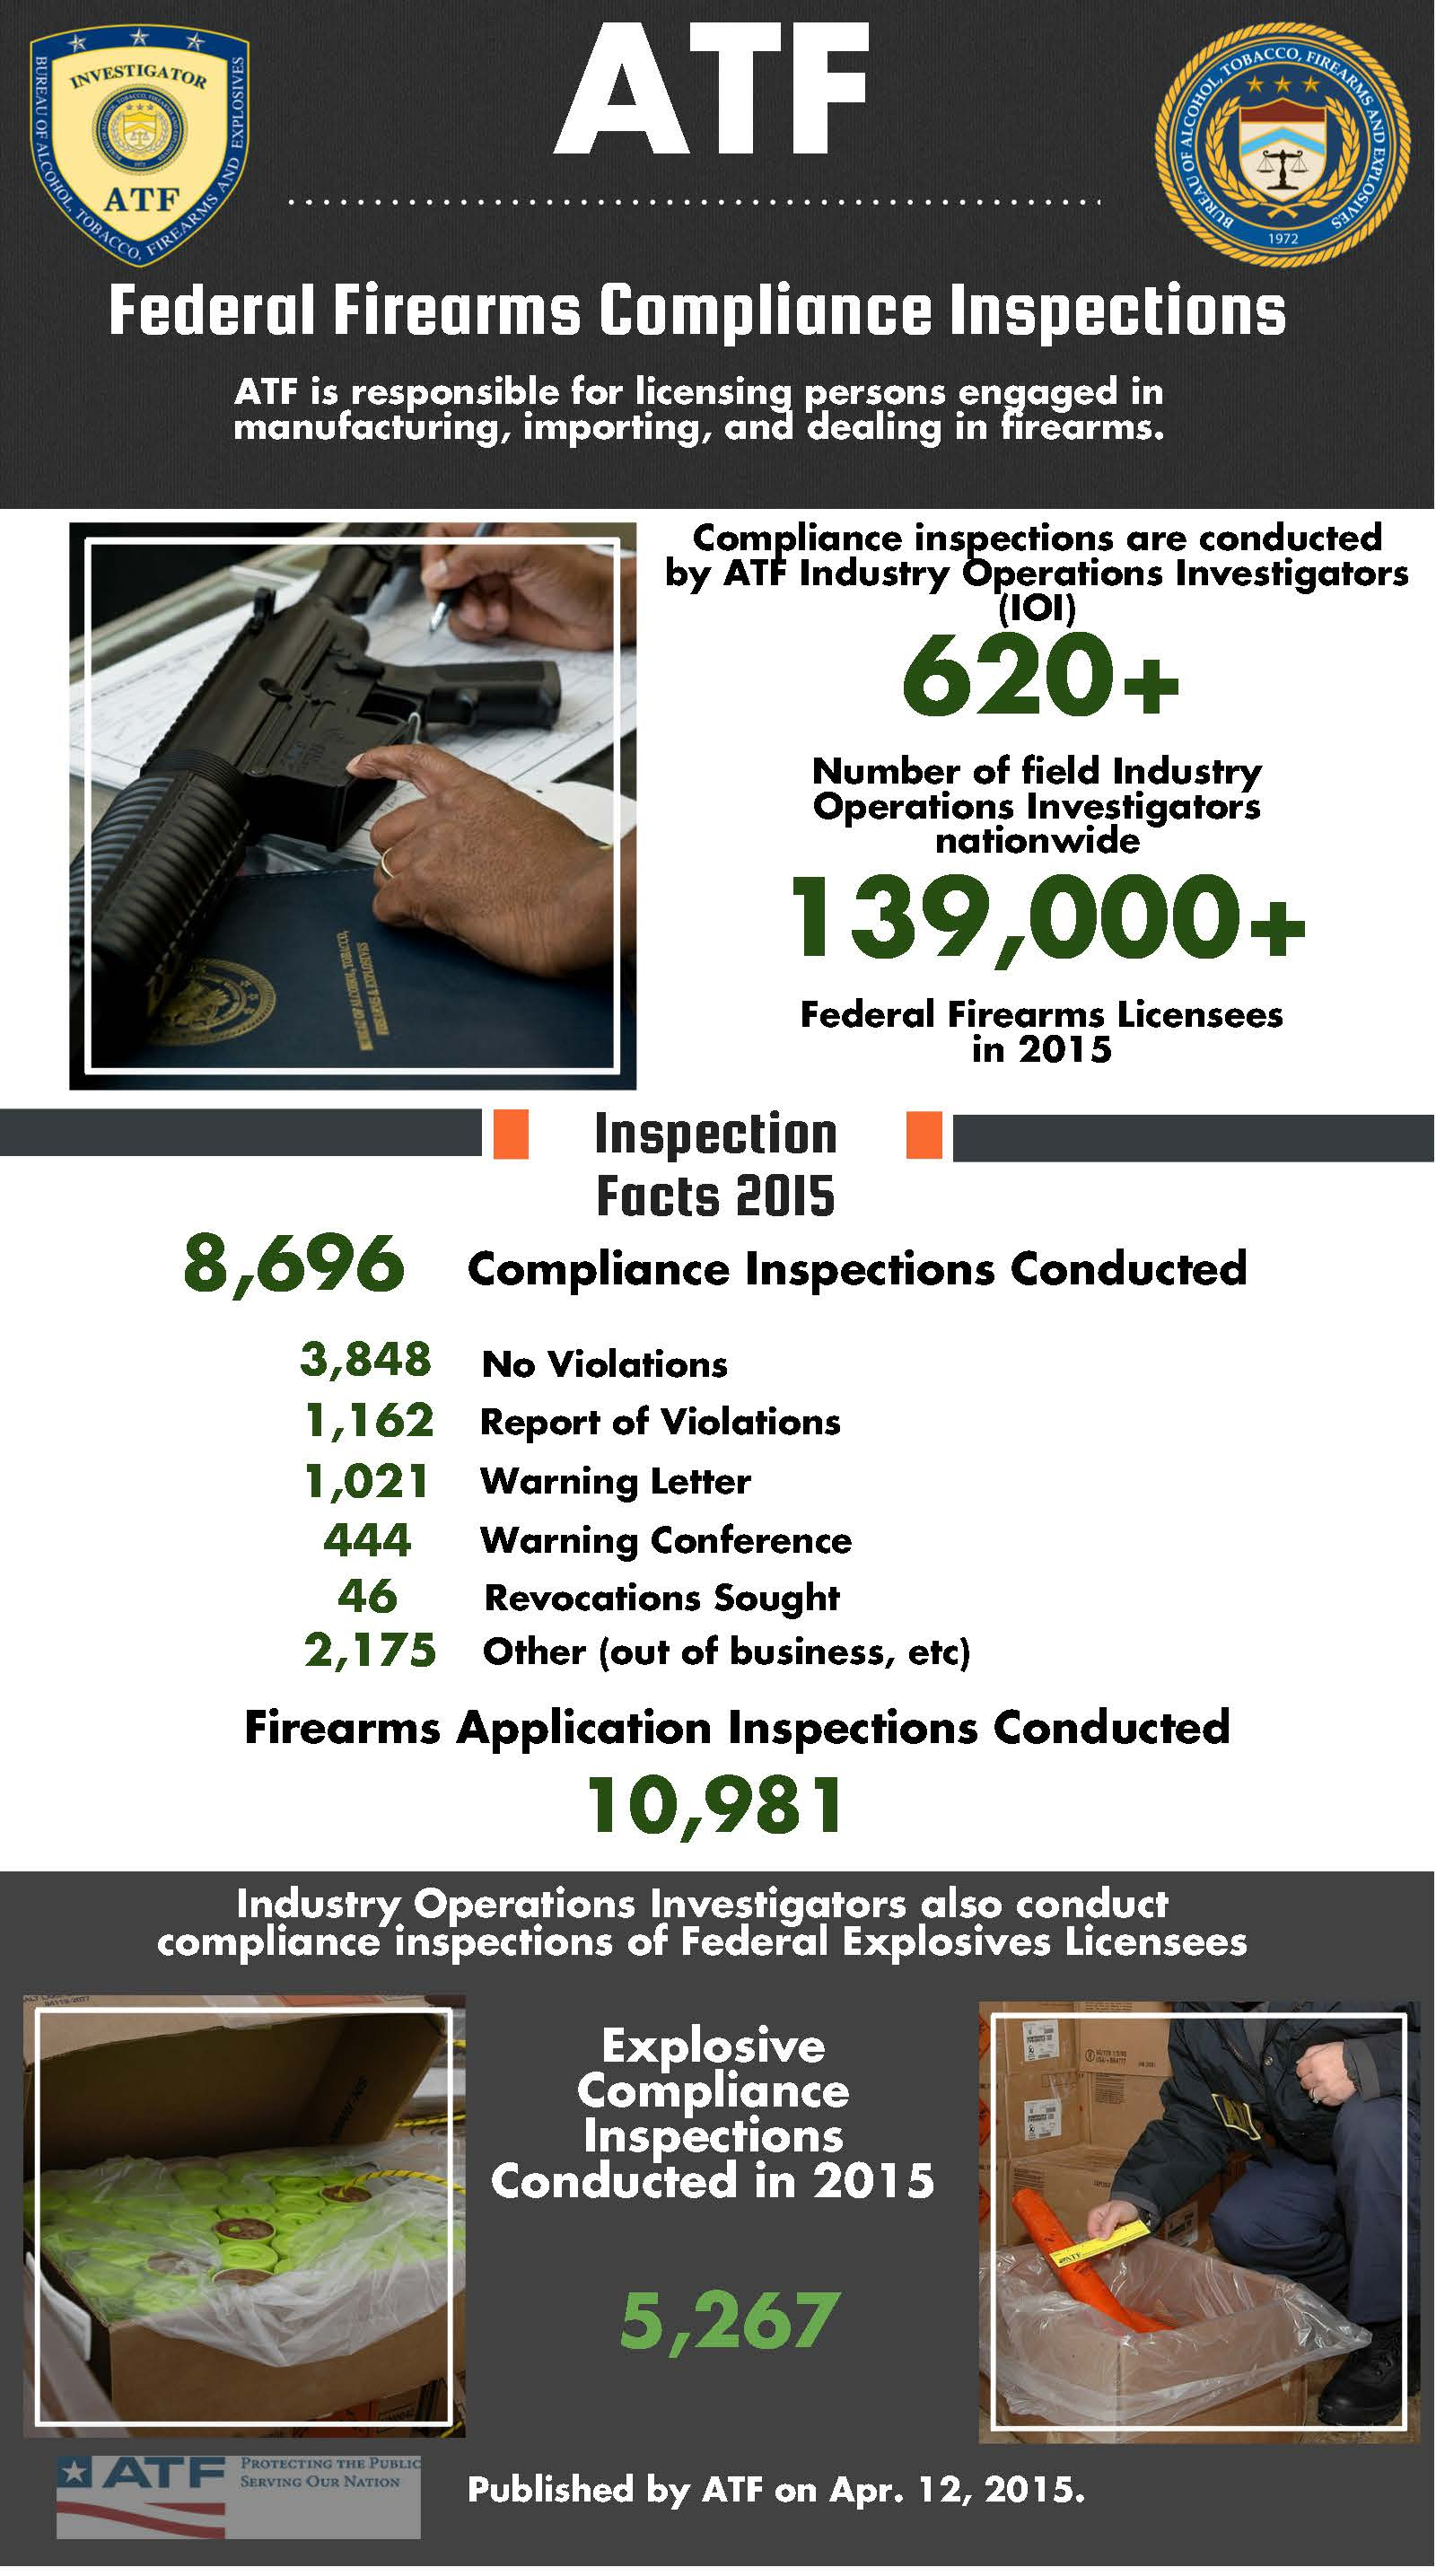 Fiscal Year 2015 Federal Firearms Compliance Inspections